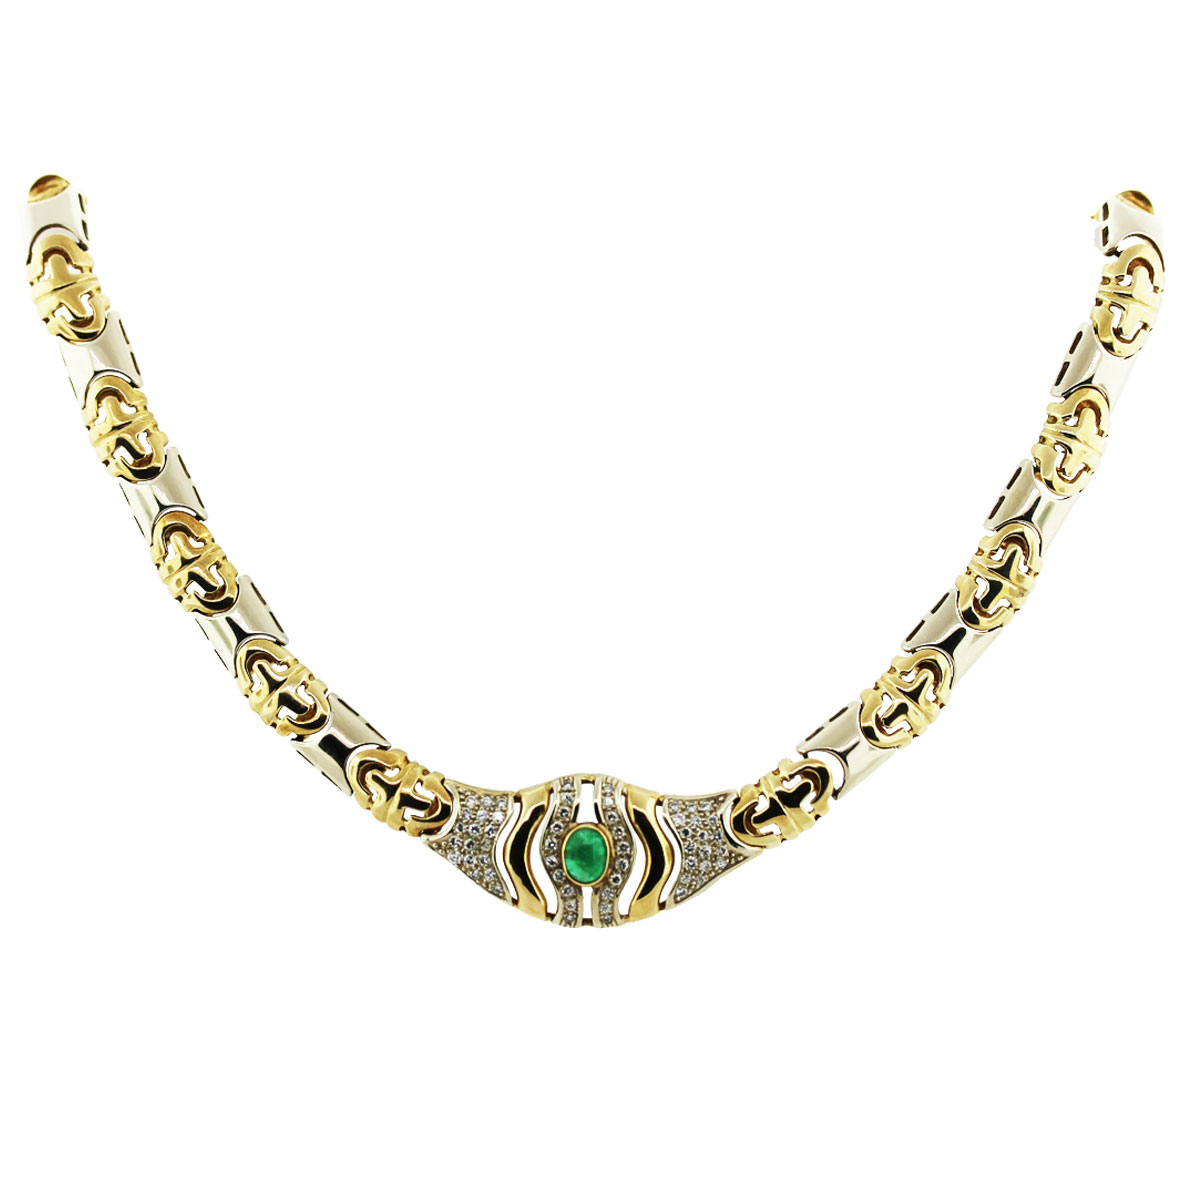 14k Two Toned Gold, Diamond Emerald Stampato Link Necklace